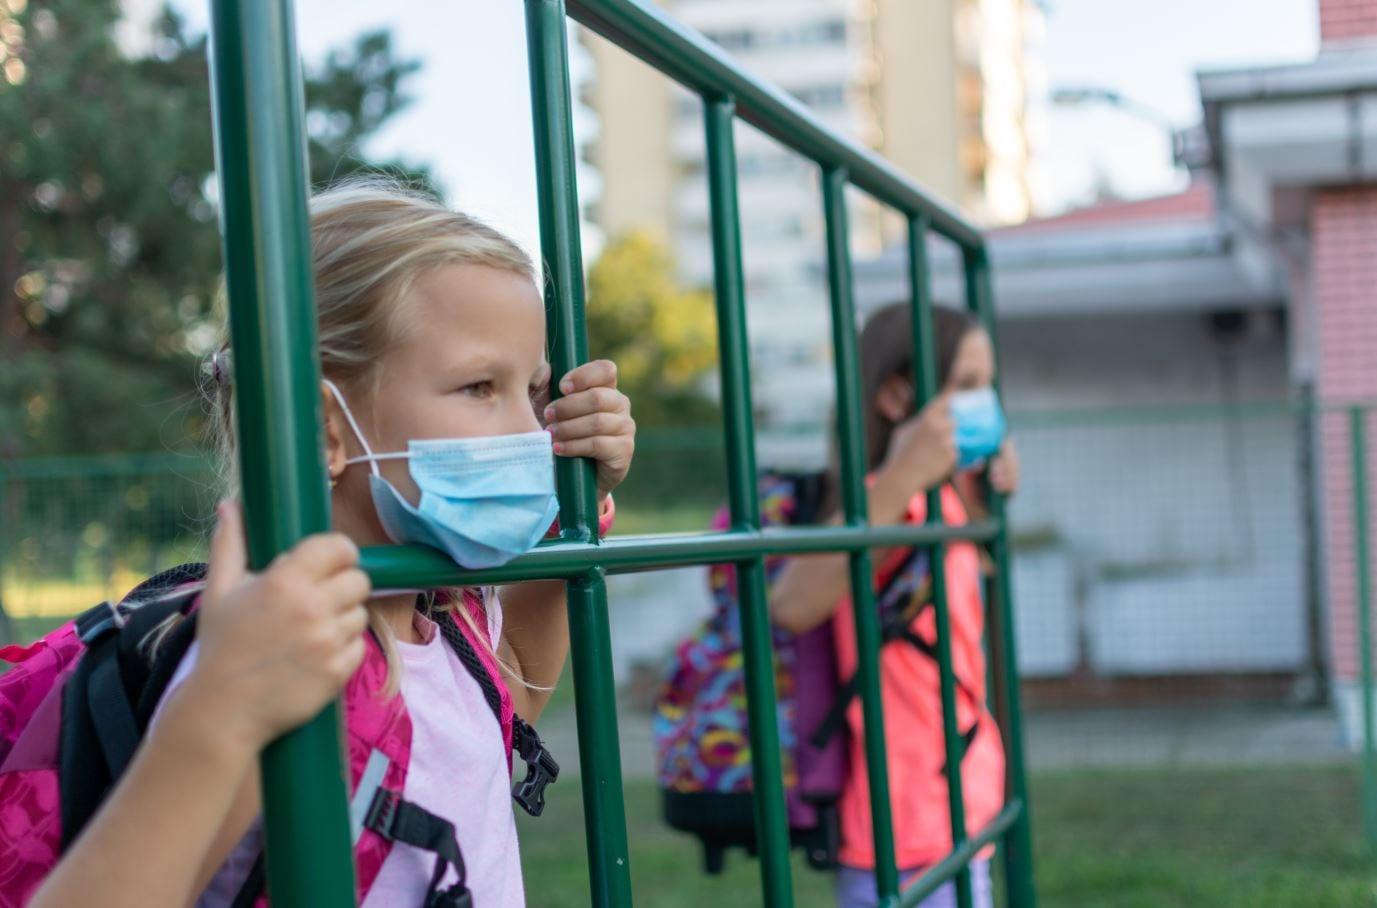 Children at school gates with mask on